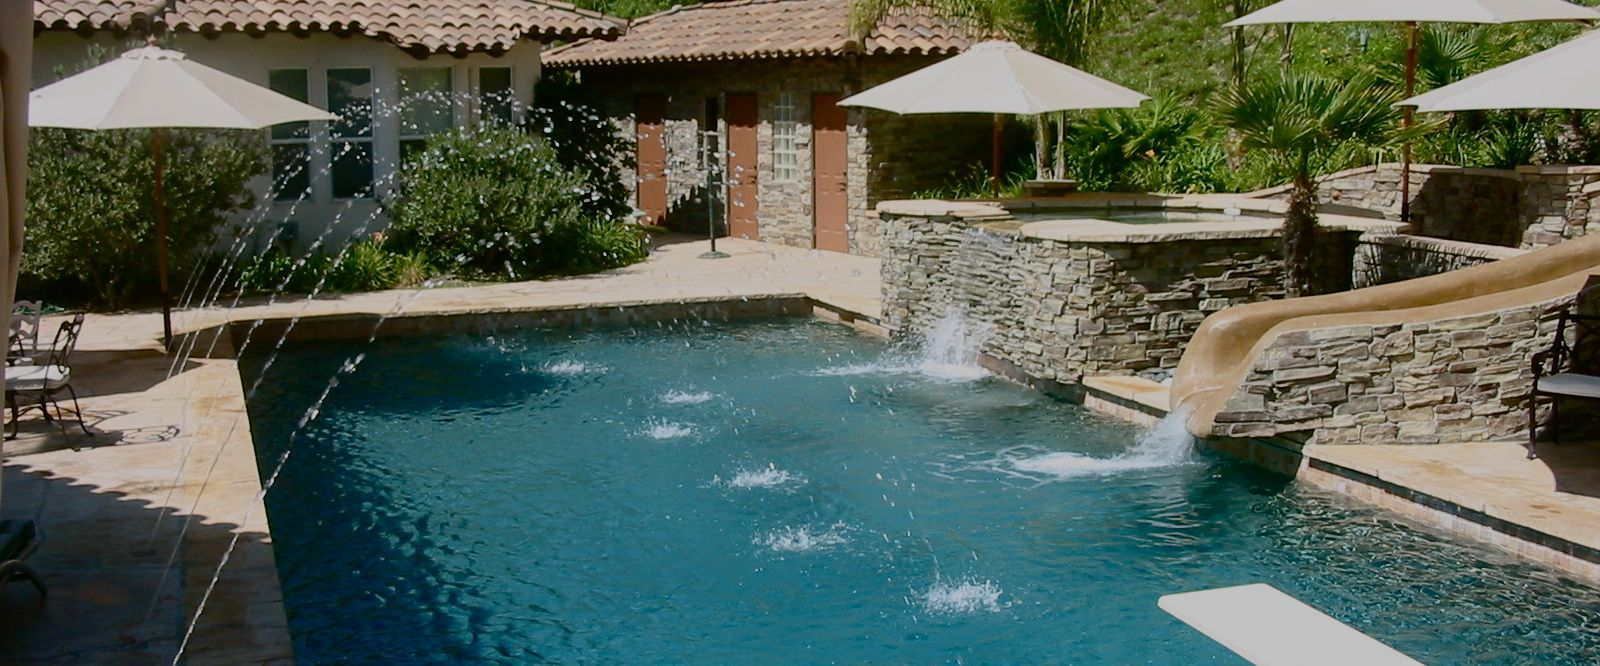 Pool with spa overflow, slide and water features.jpg